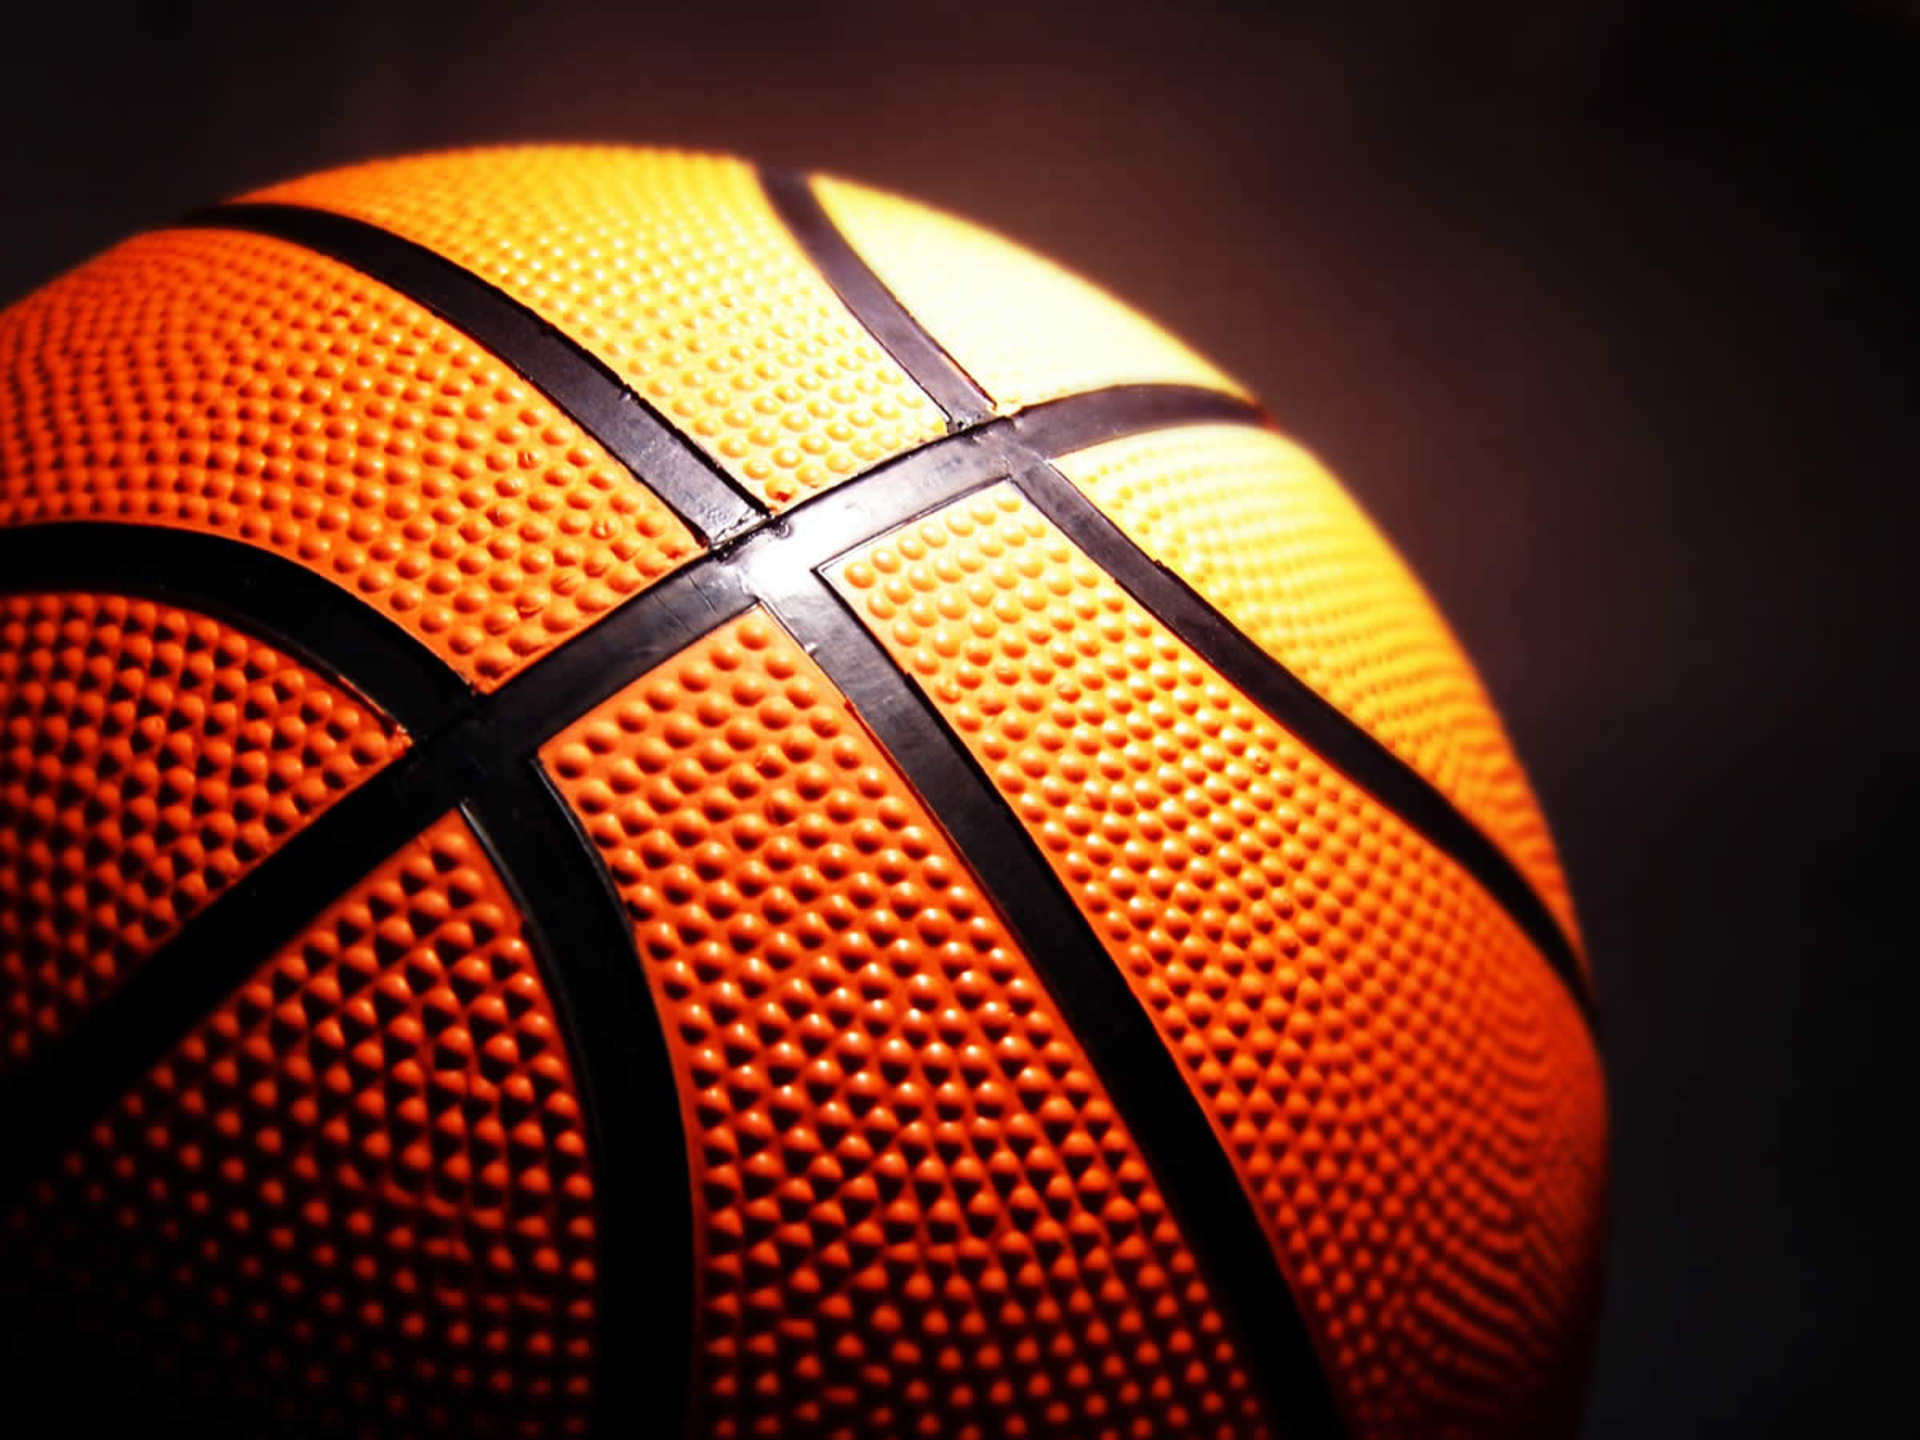 30+ Basketball Backgrounds, Wallpapers, Images, Pictures | Design